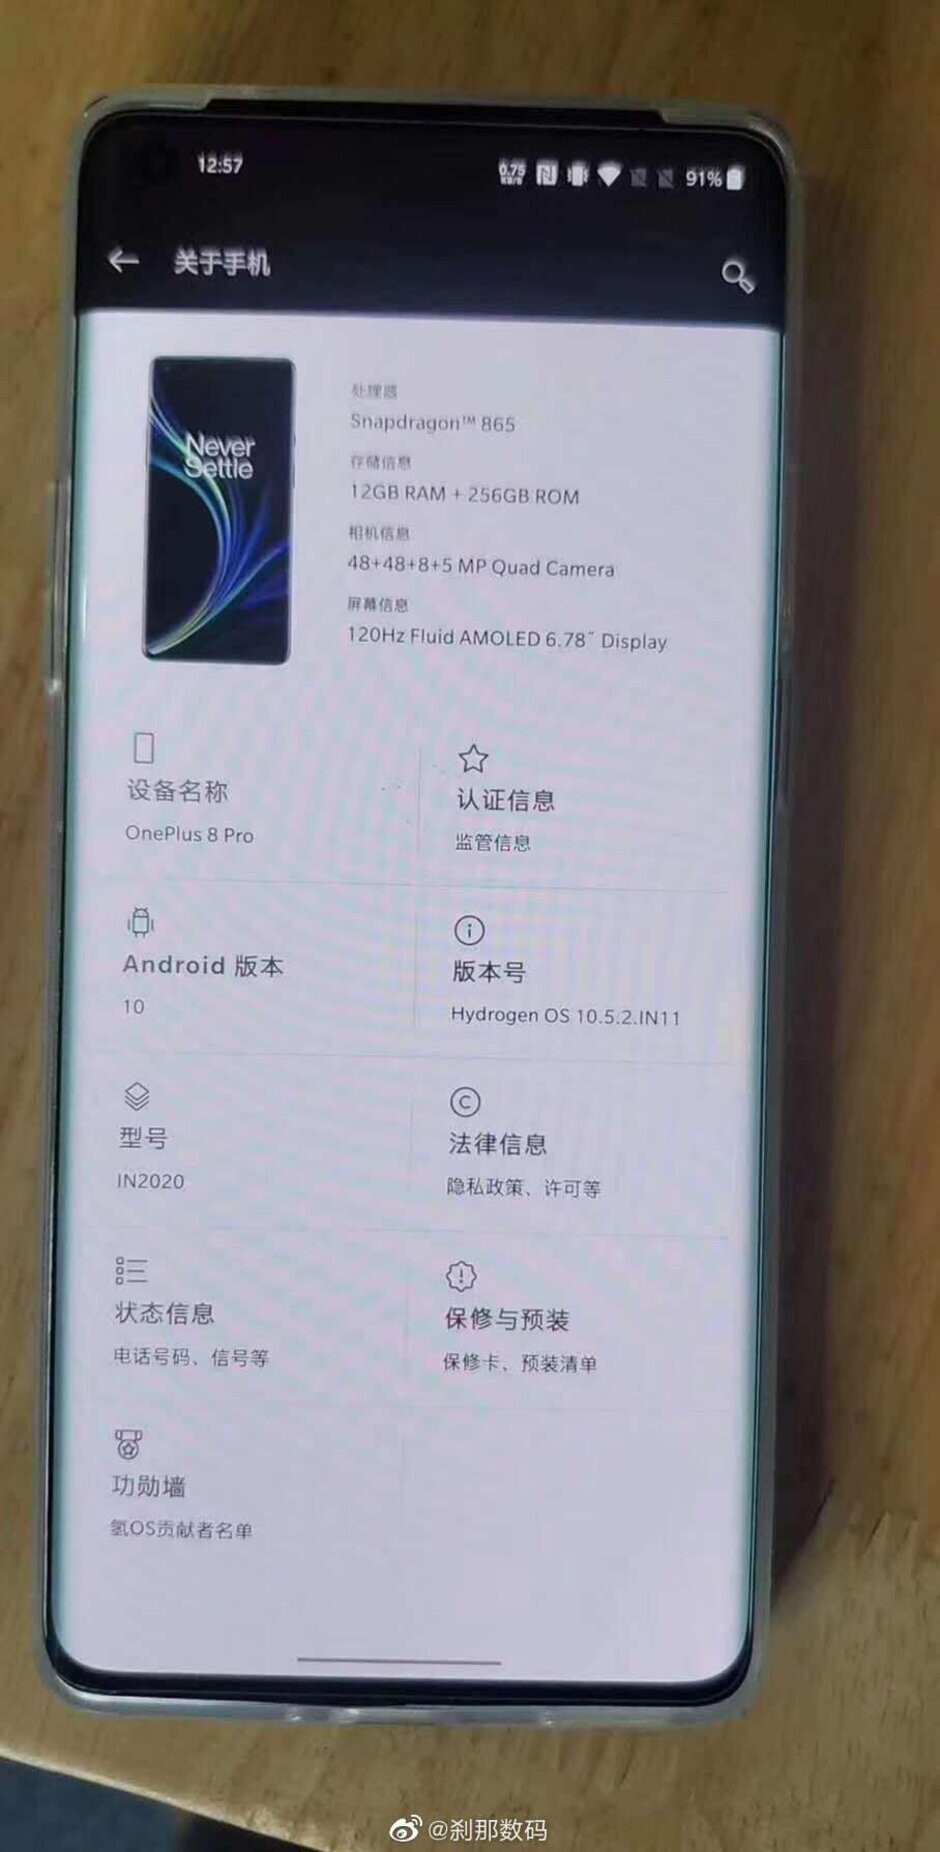 Alleged OnePlus 8 Pro specs - Real OnePlus 8 Pro 5G image appears, along with cases, prices, and the camera specs